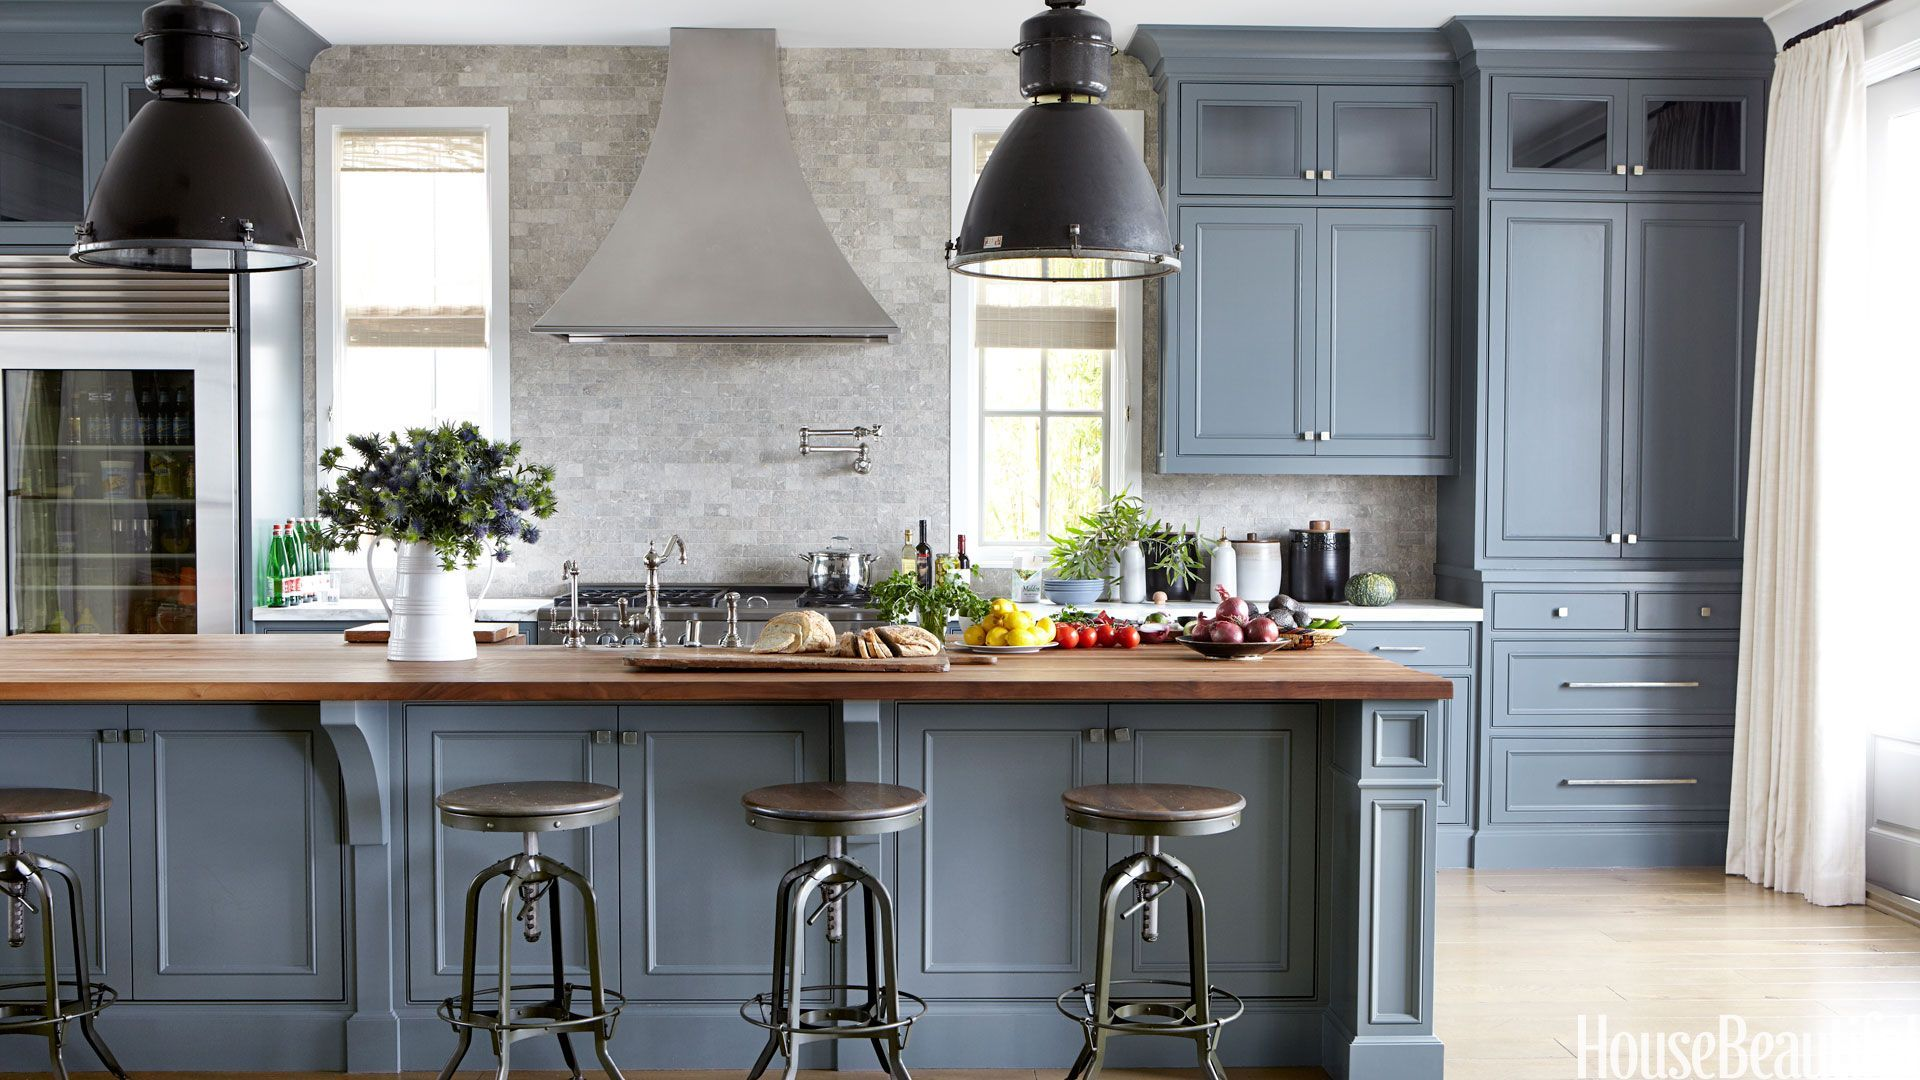 Ideas for painting kitchen cabinets  Great Colors for Painting Kitchen Cabinets  Ben  Pinterest